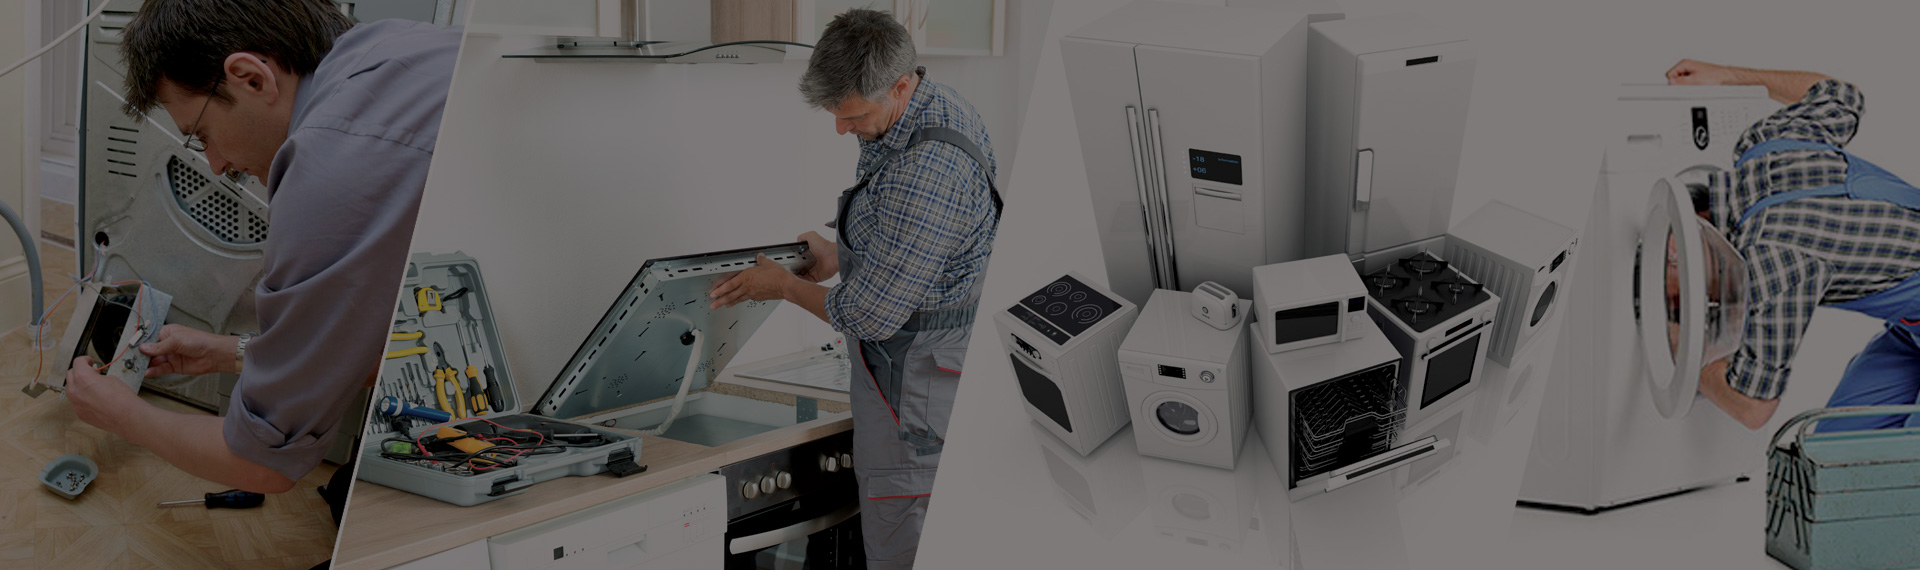 Teckrom Appliance Repair Lakeside CA